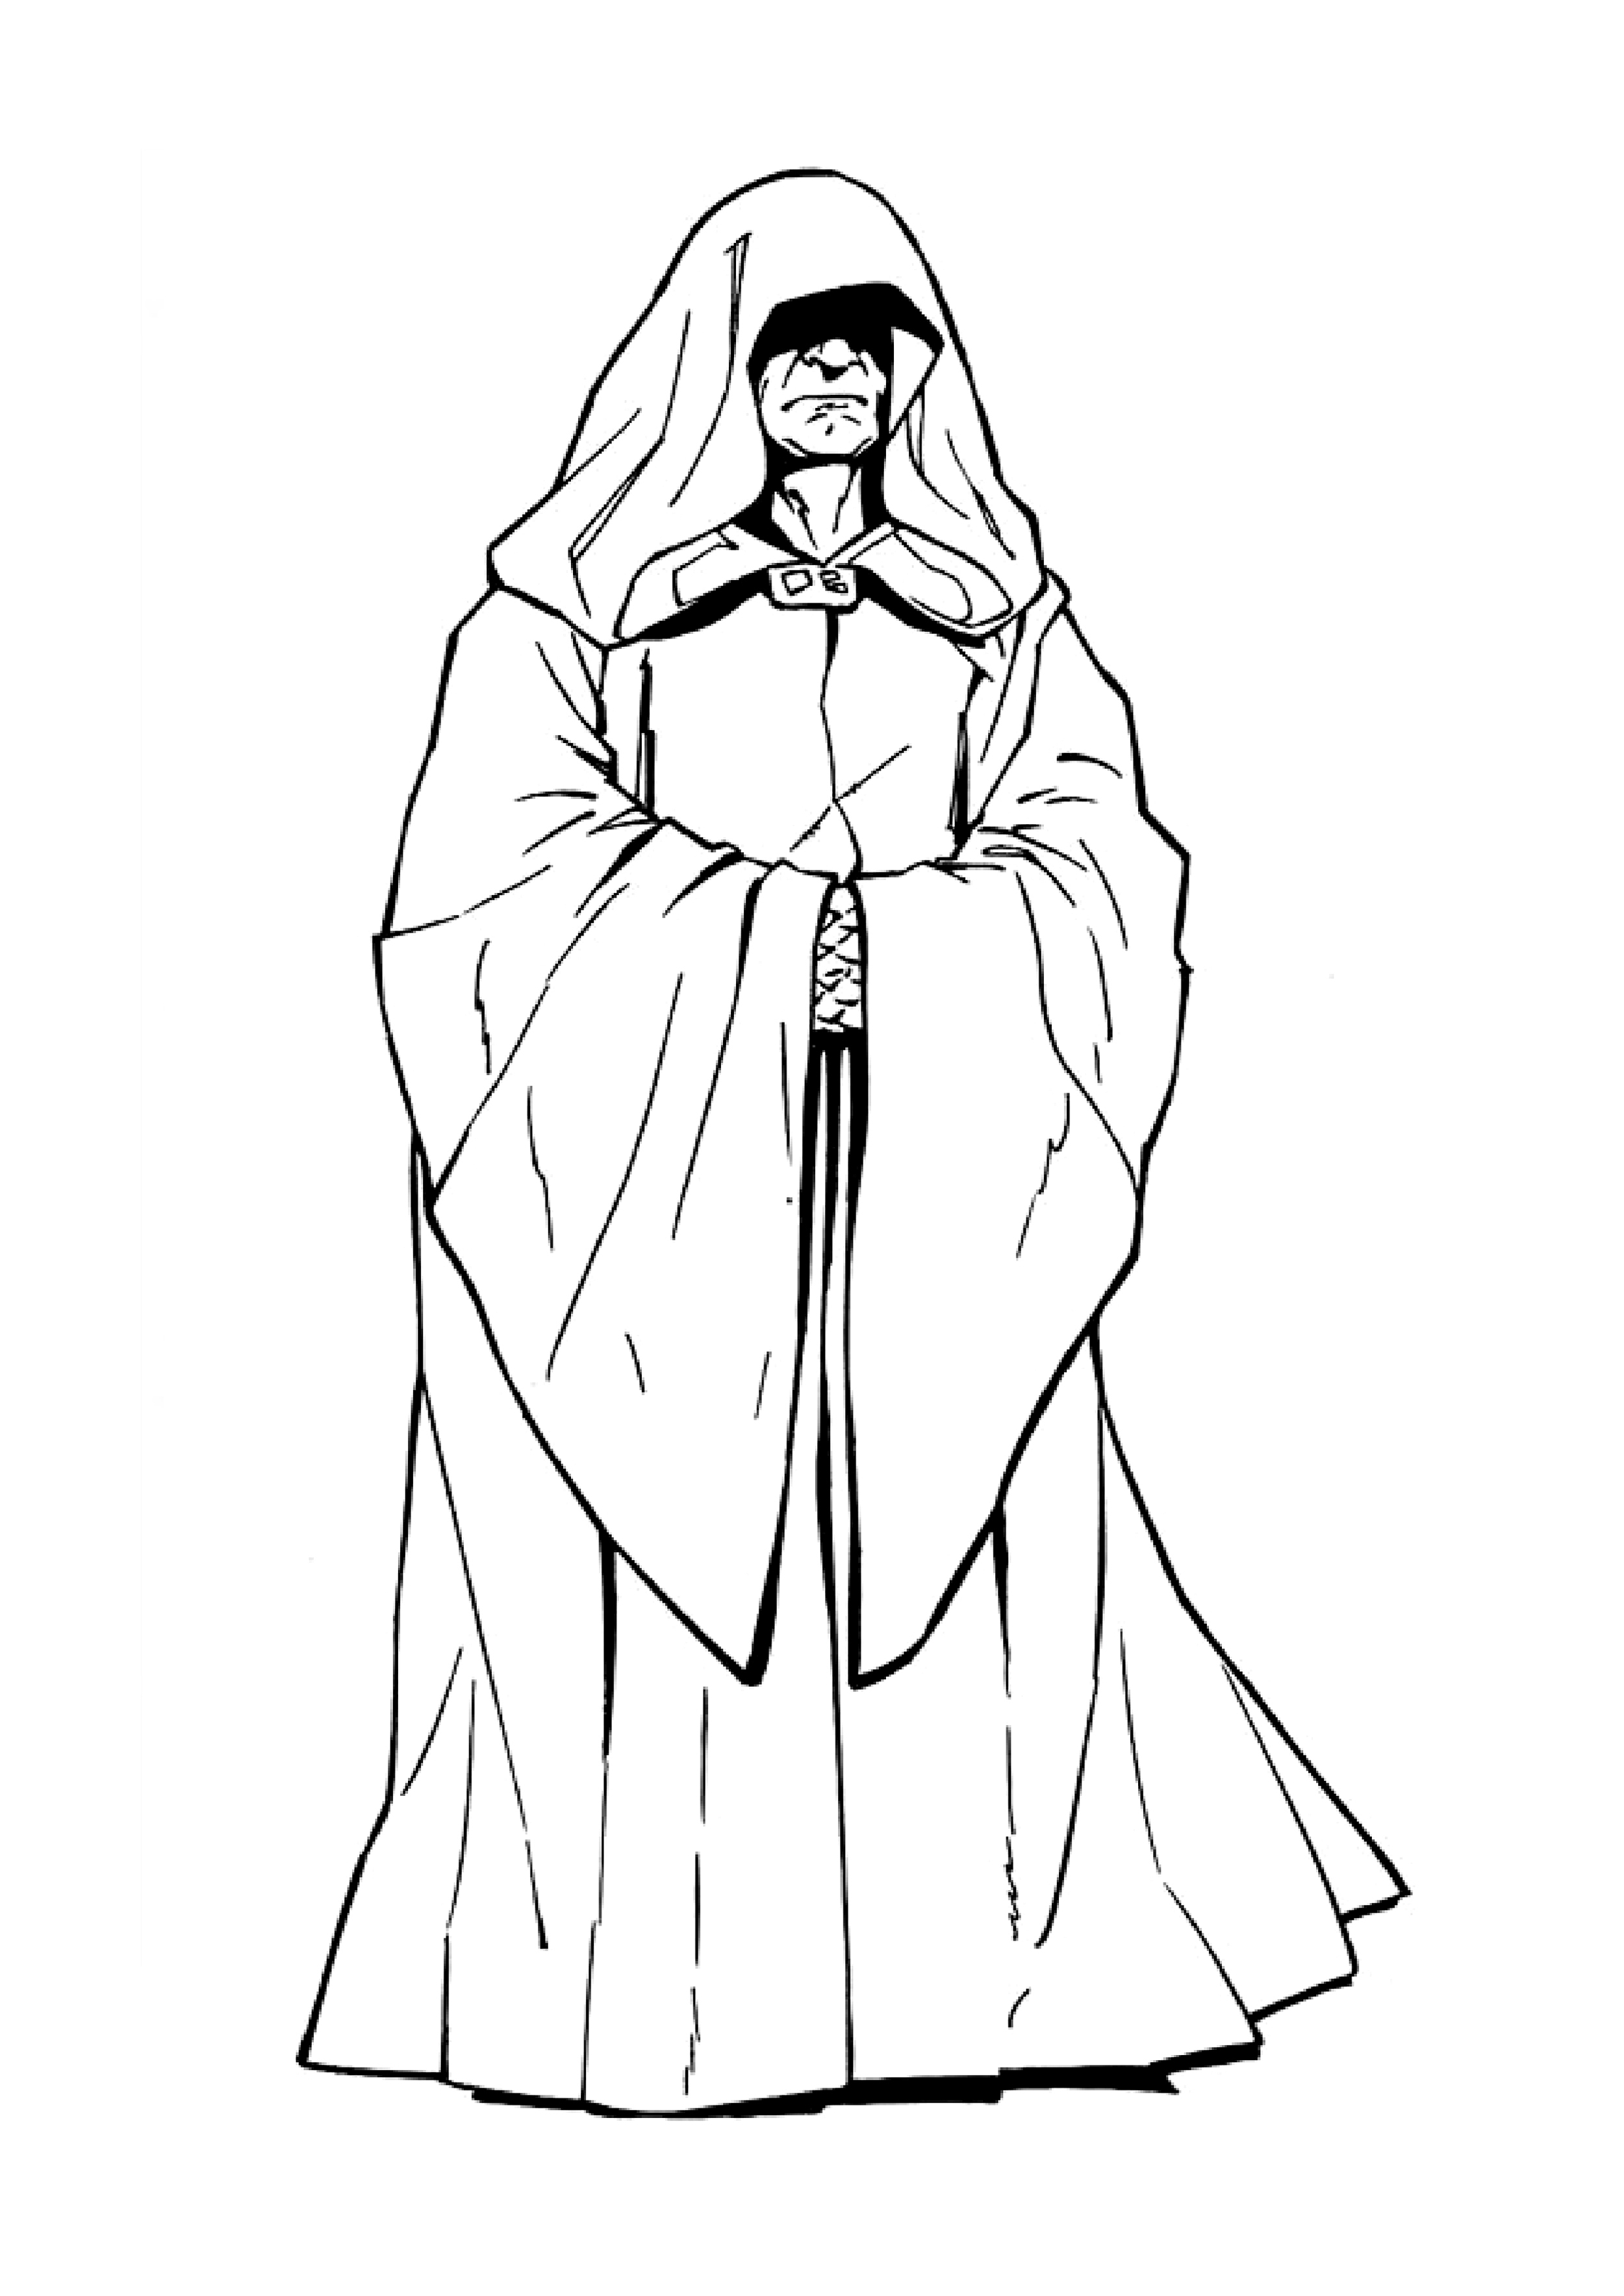 Star Wars Empereur Palpatine 1 - Coloriage Star Wars pour Star Wars A Colorier